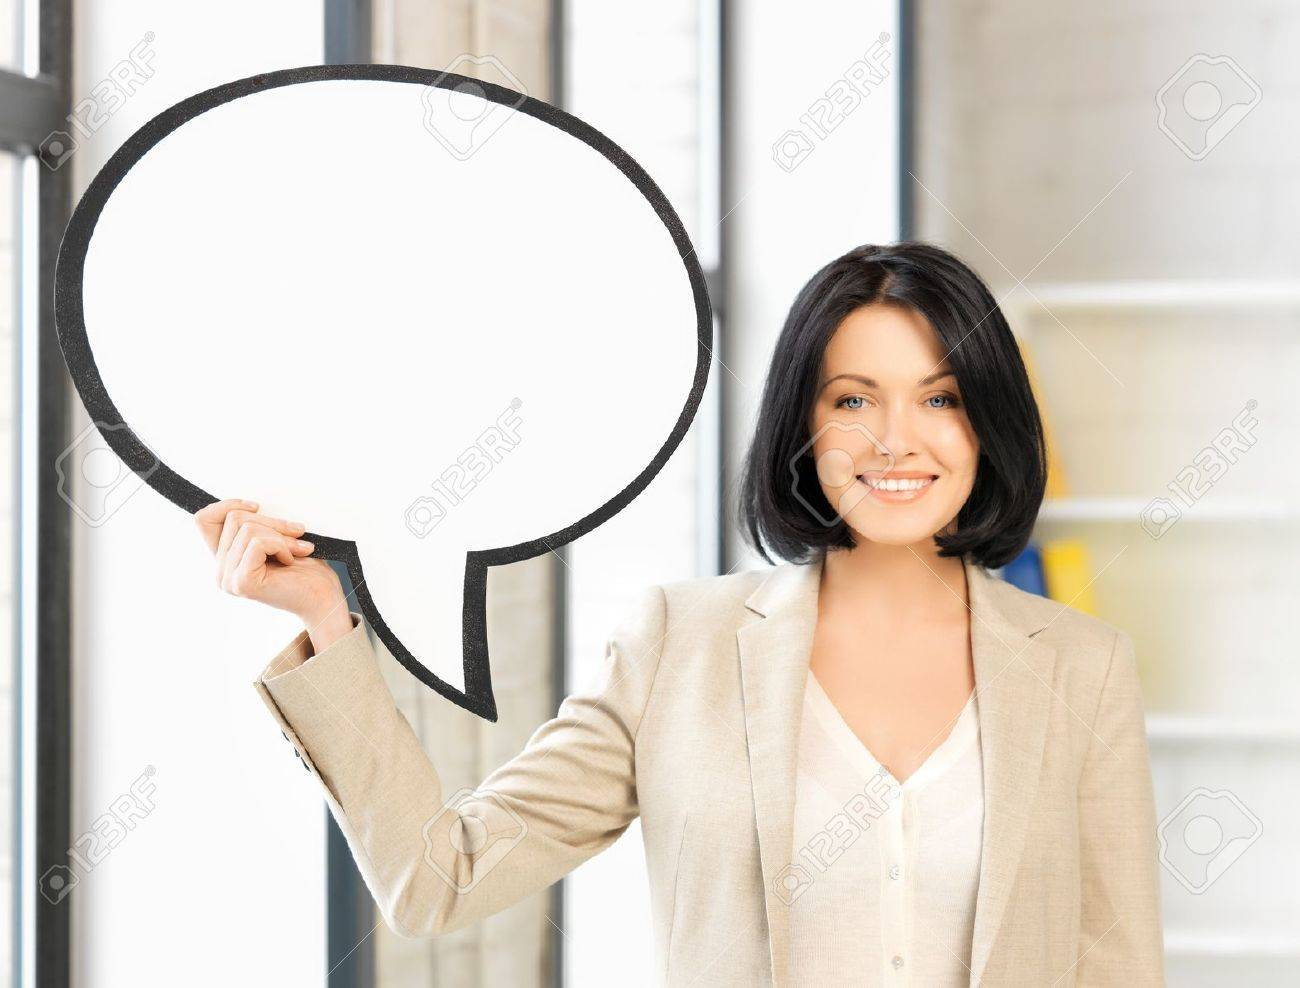 picture of smiling businesswoman with blank text bubble - 19001192